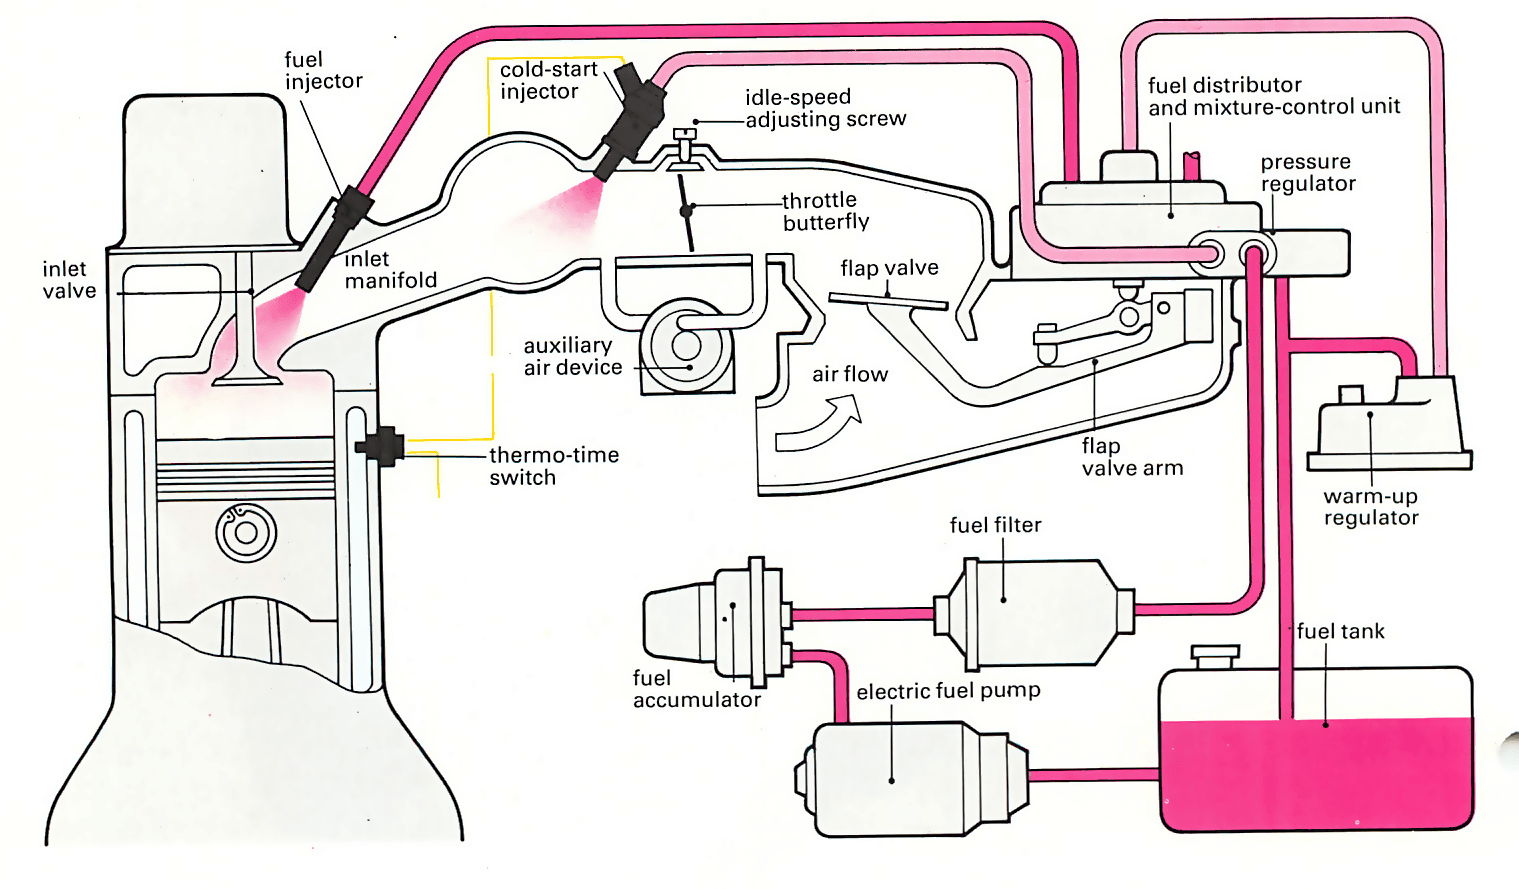 fuel injection engine diagram fuel injection engine diagram auto electrical wiring diagram fuel injection engine diagram mechanical box mod  [ 1519 x 889 Pixel ]